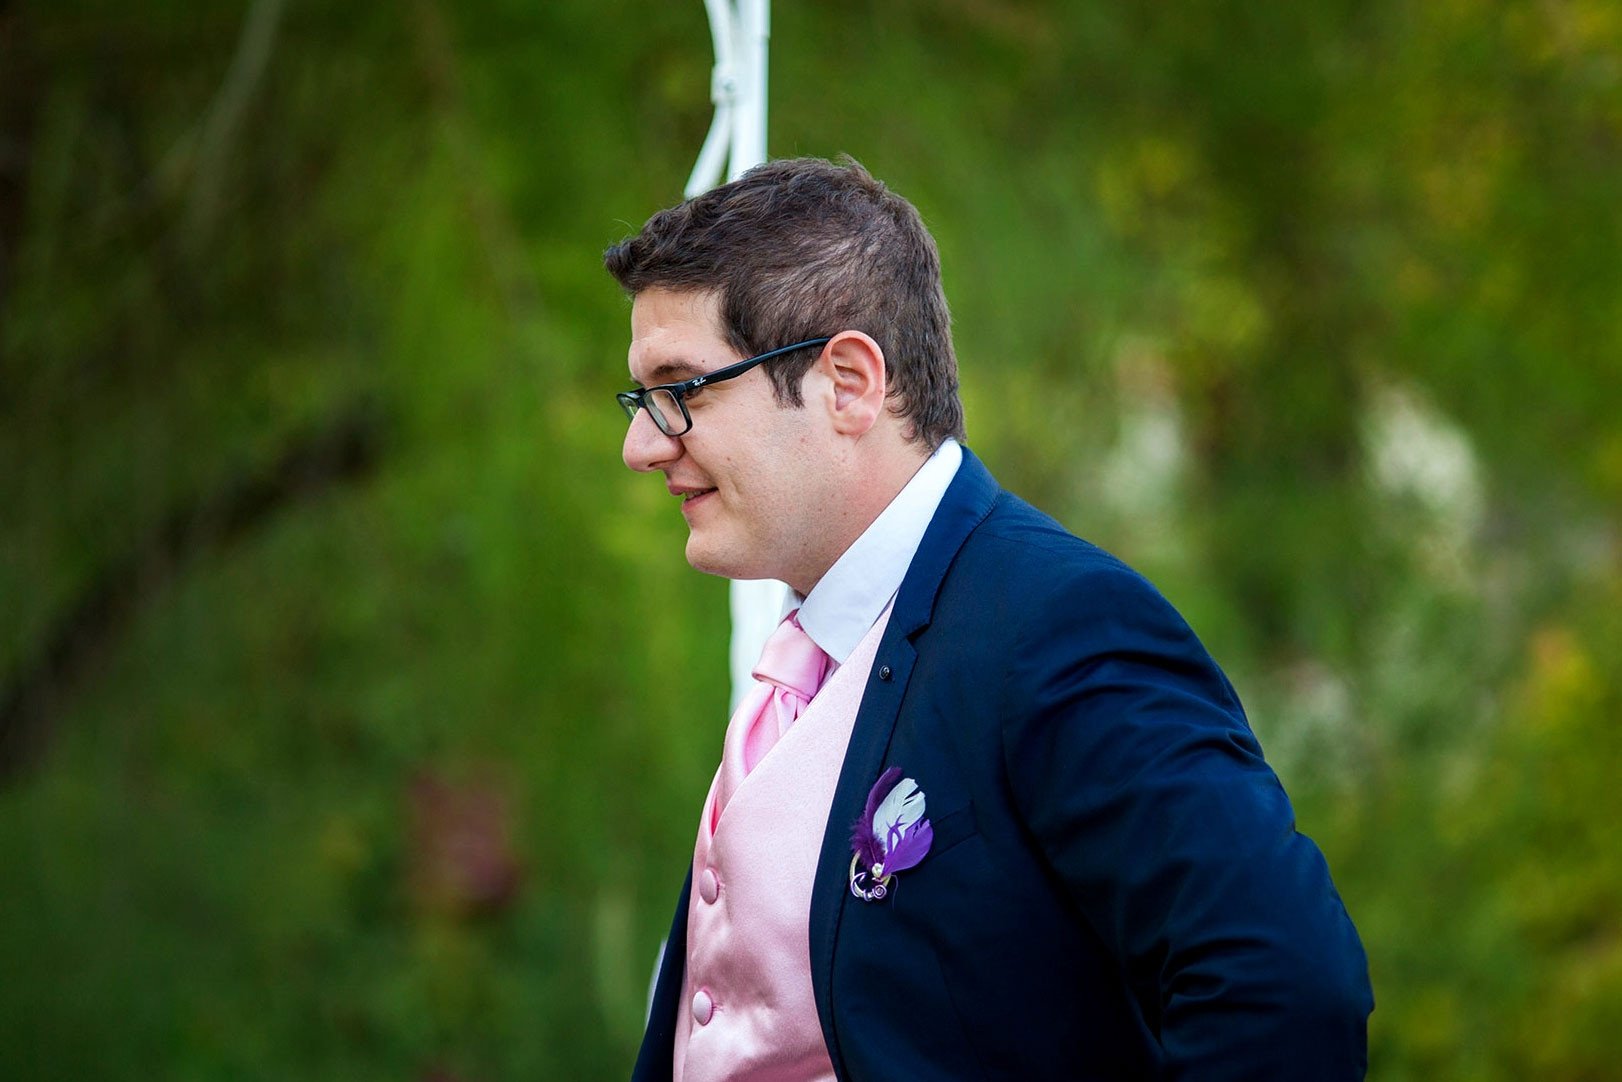 mariage-france-philippe-42